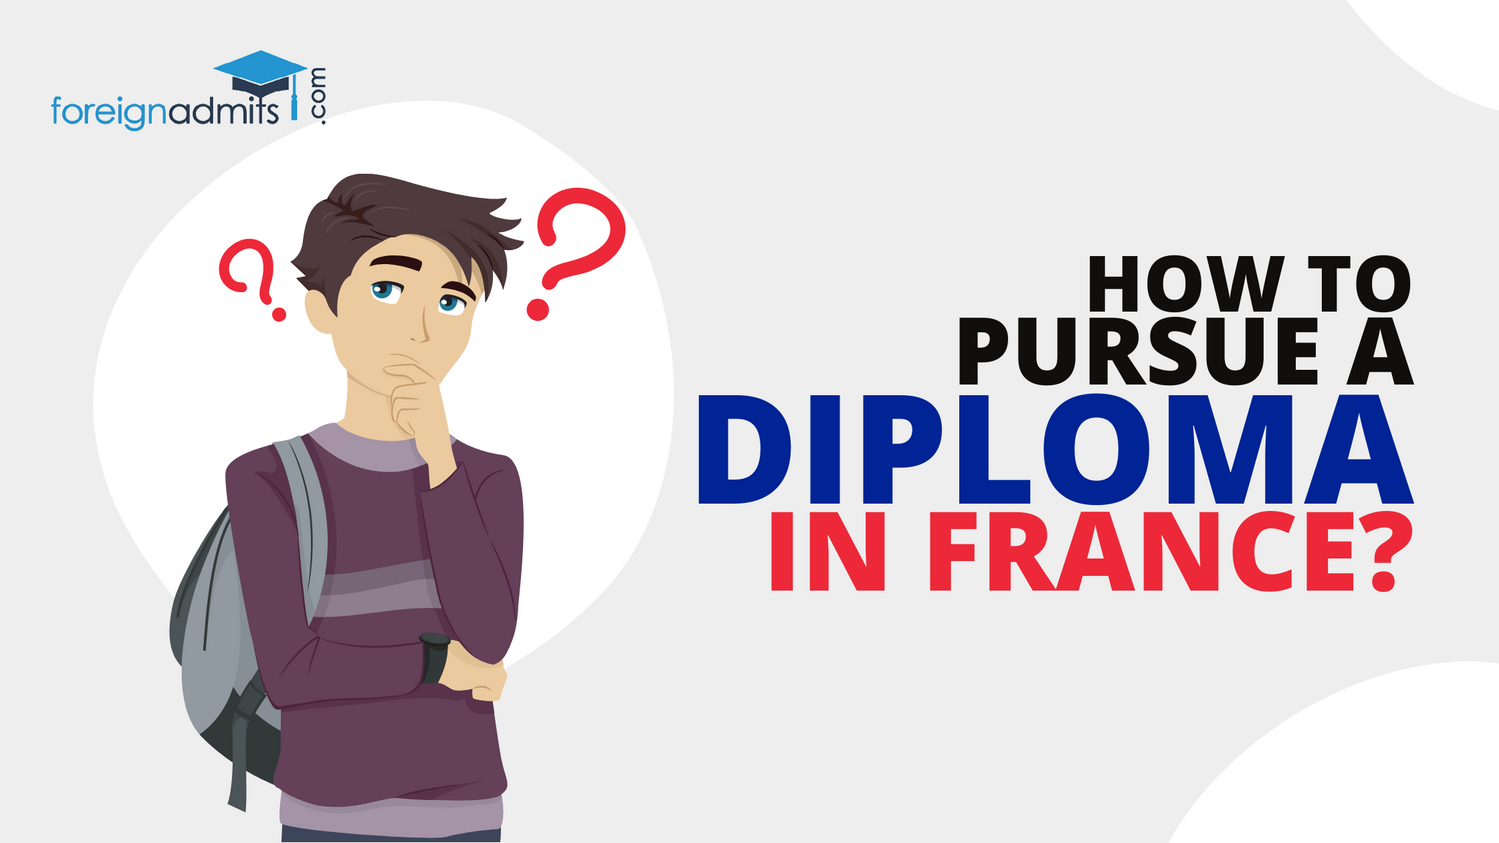 How To Pursue a Diploma In France